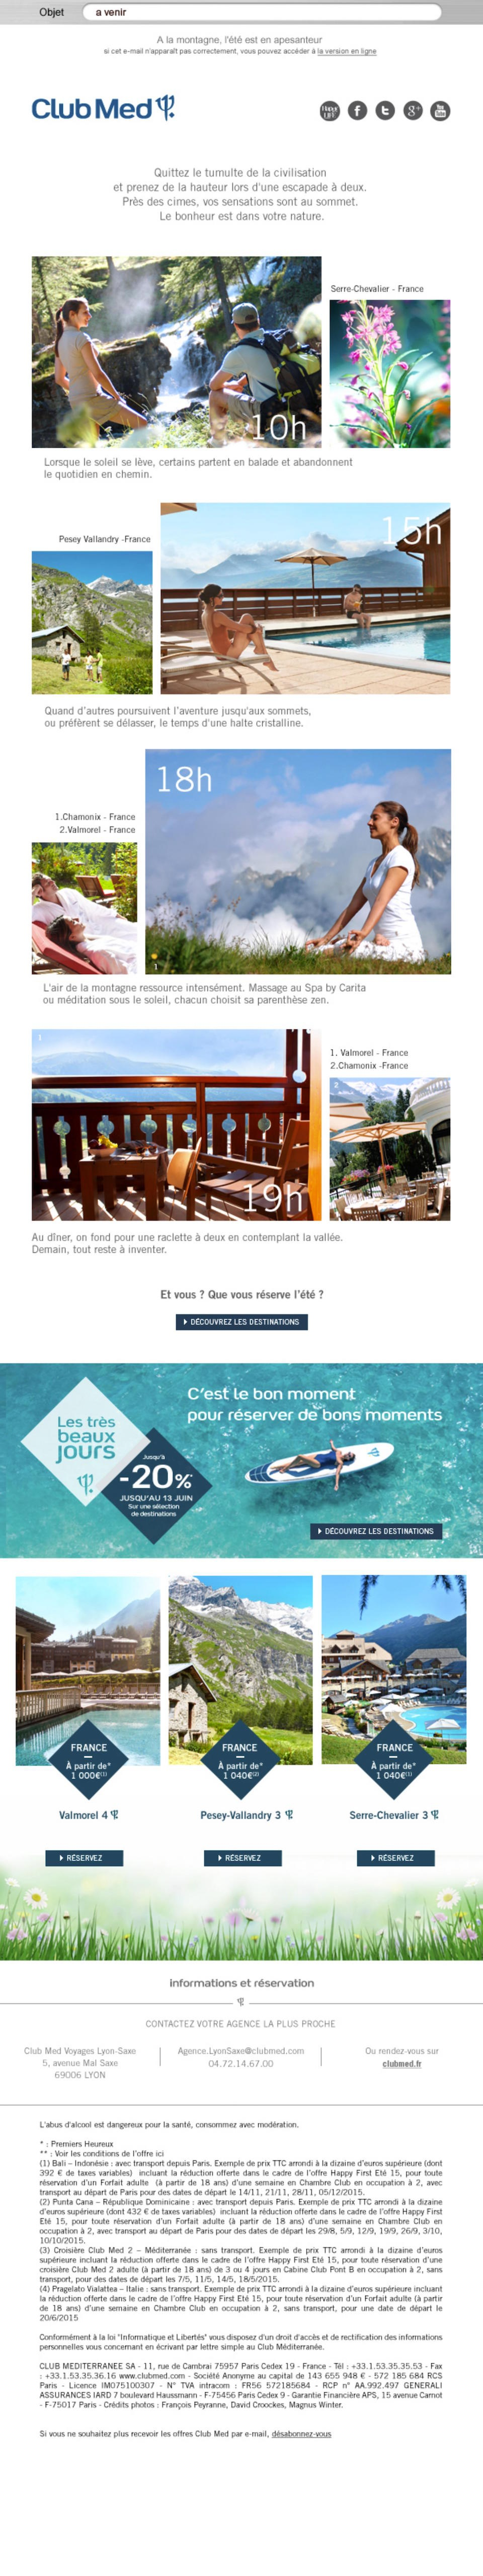 Mailing Club Med 4